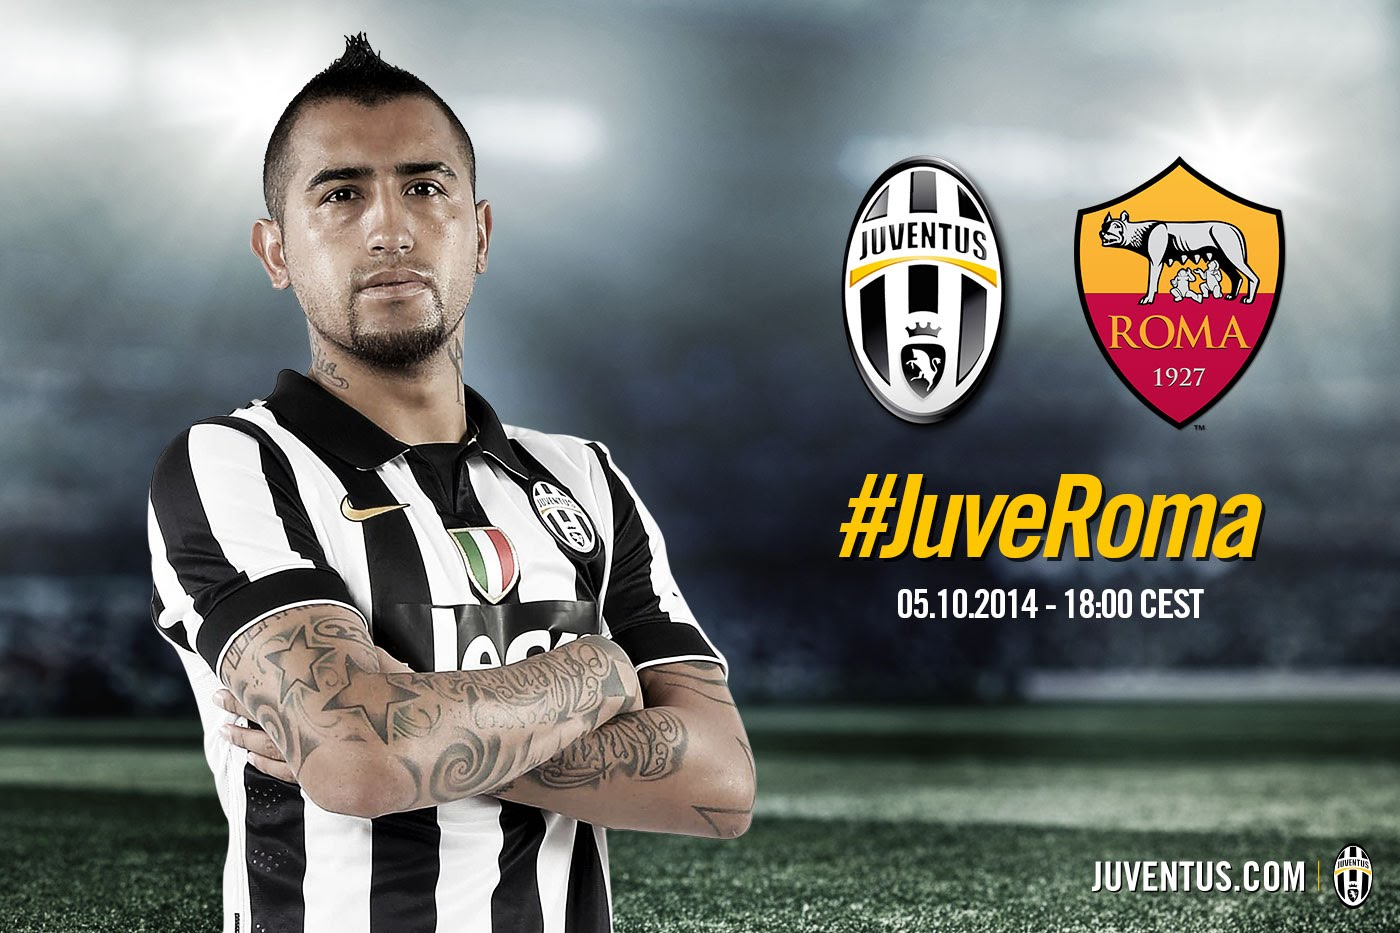 Juventus-Roma preview